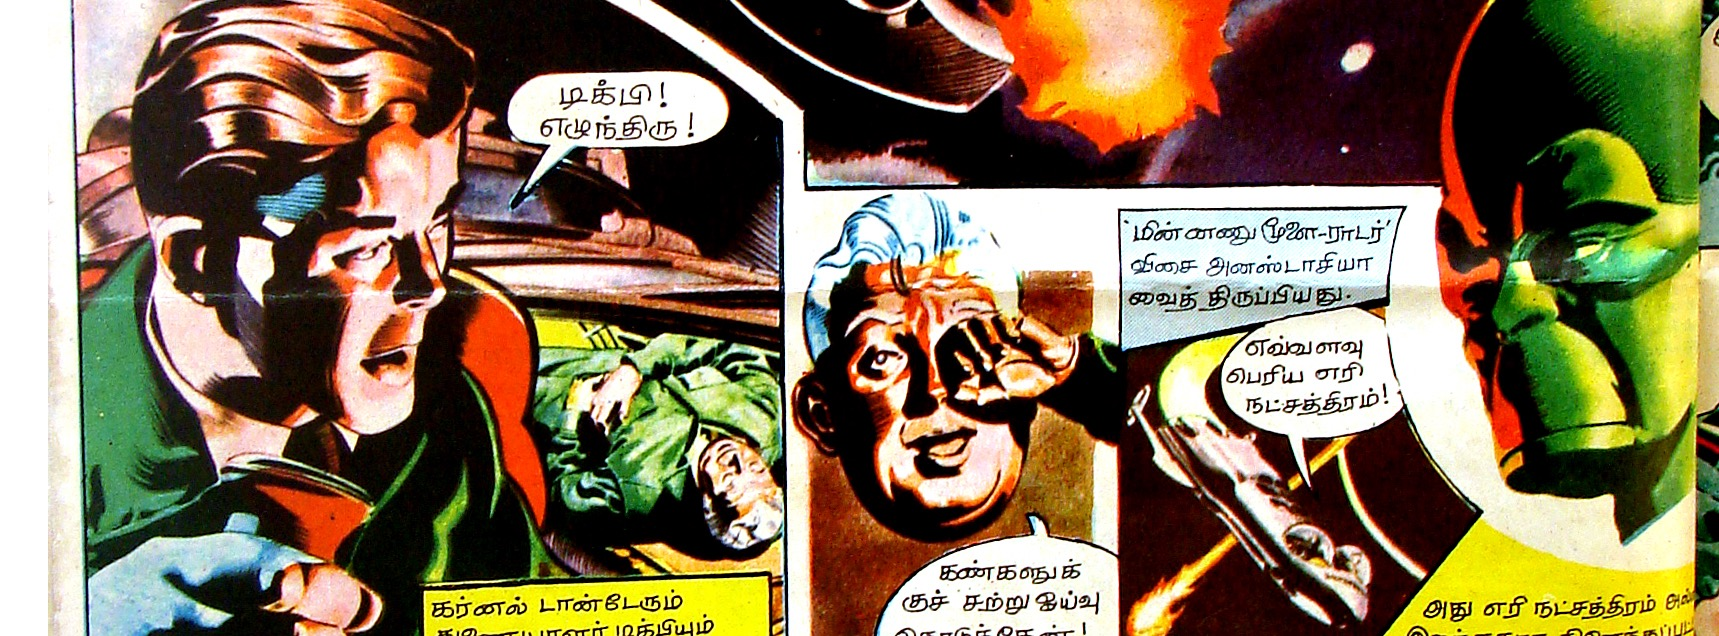 Dan Dare in India - SNIP